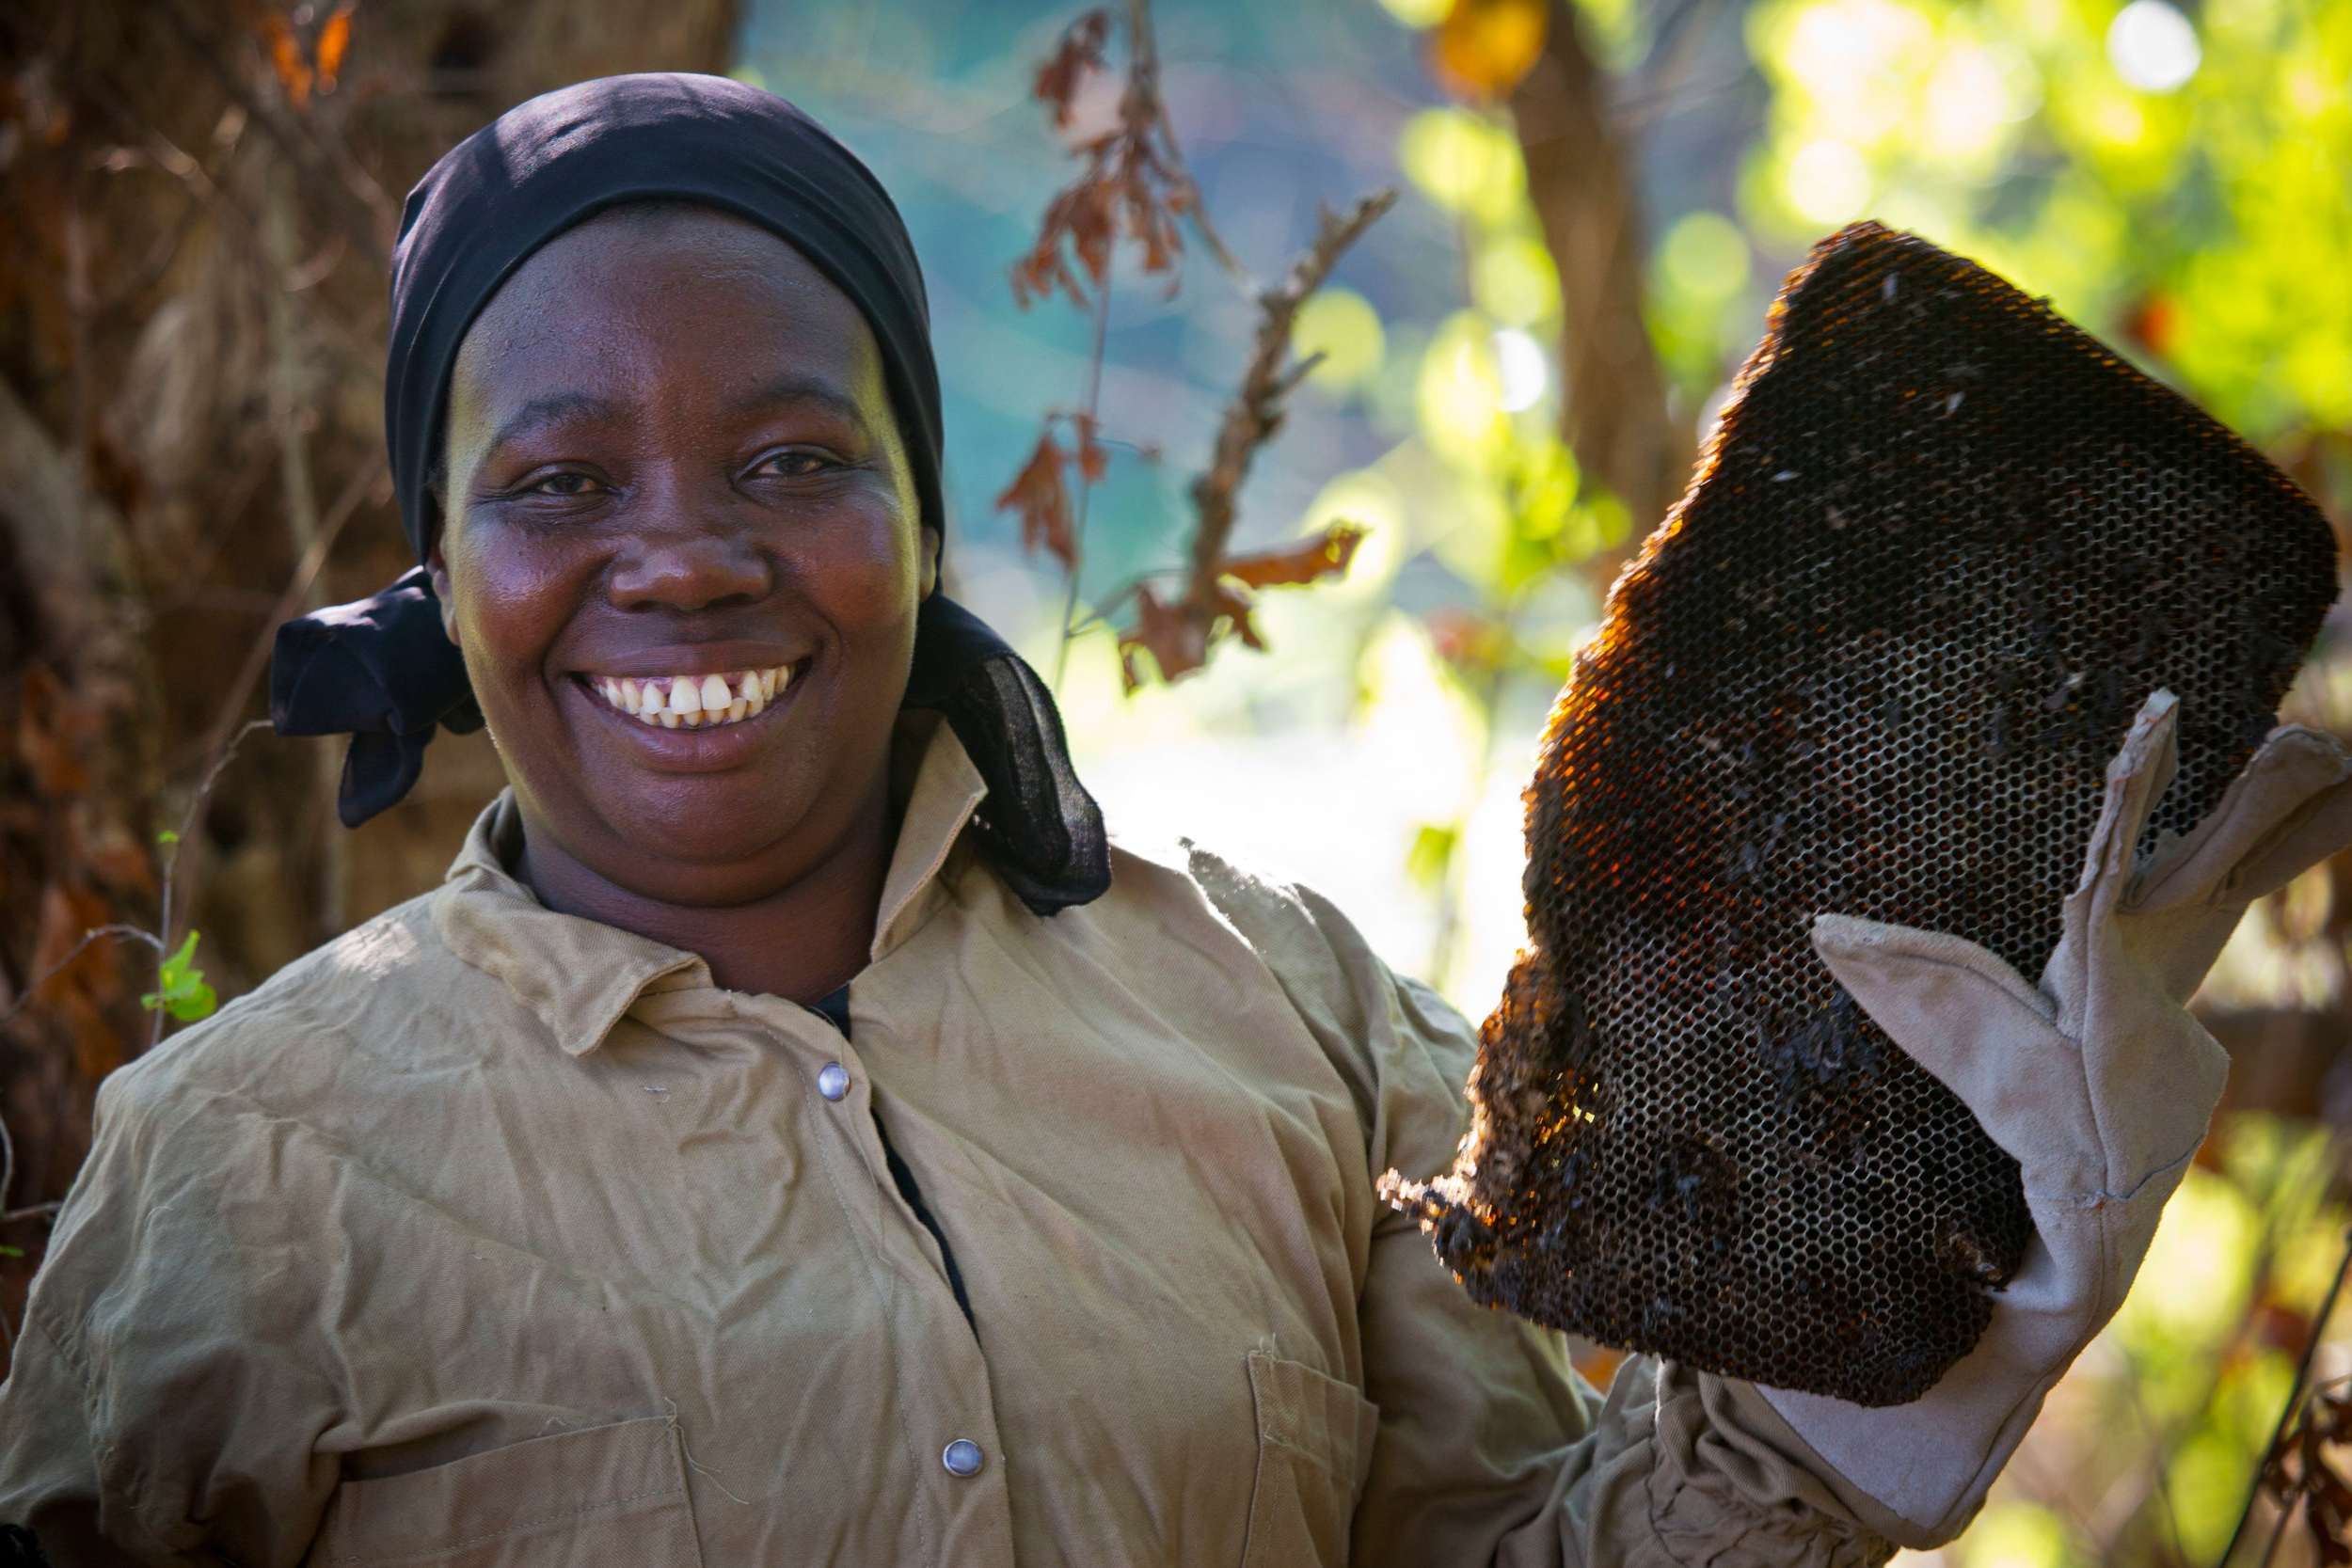 - Hadija, who took part in training sessions organised by Traidcraft Exchange, with her bee hives in Rufiji, Tanzania. Credit: Kate Holt